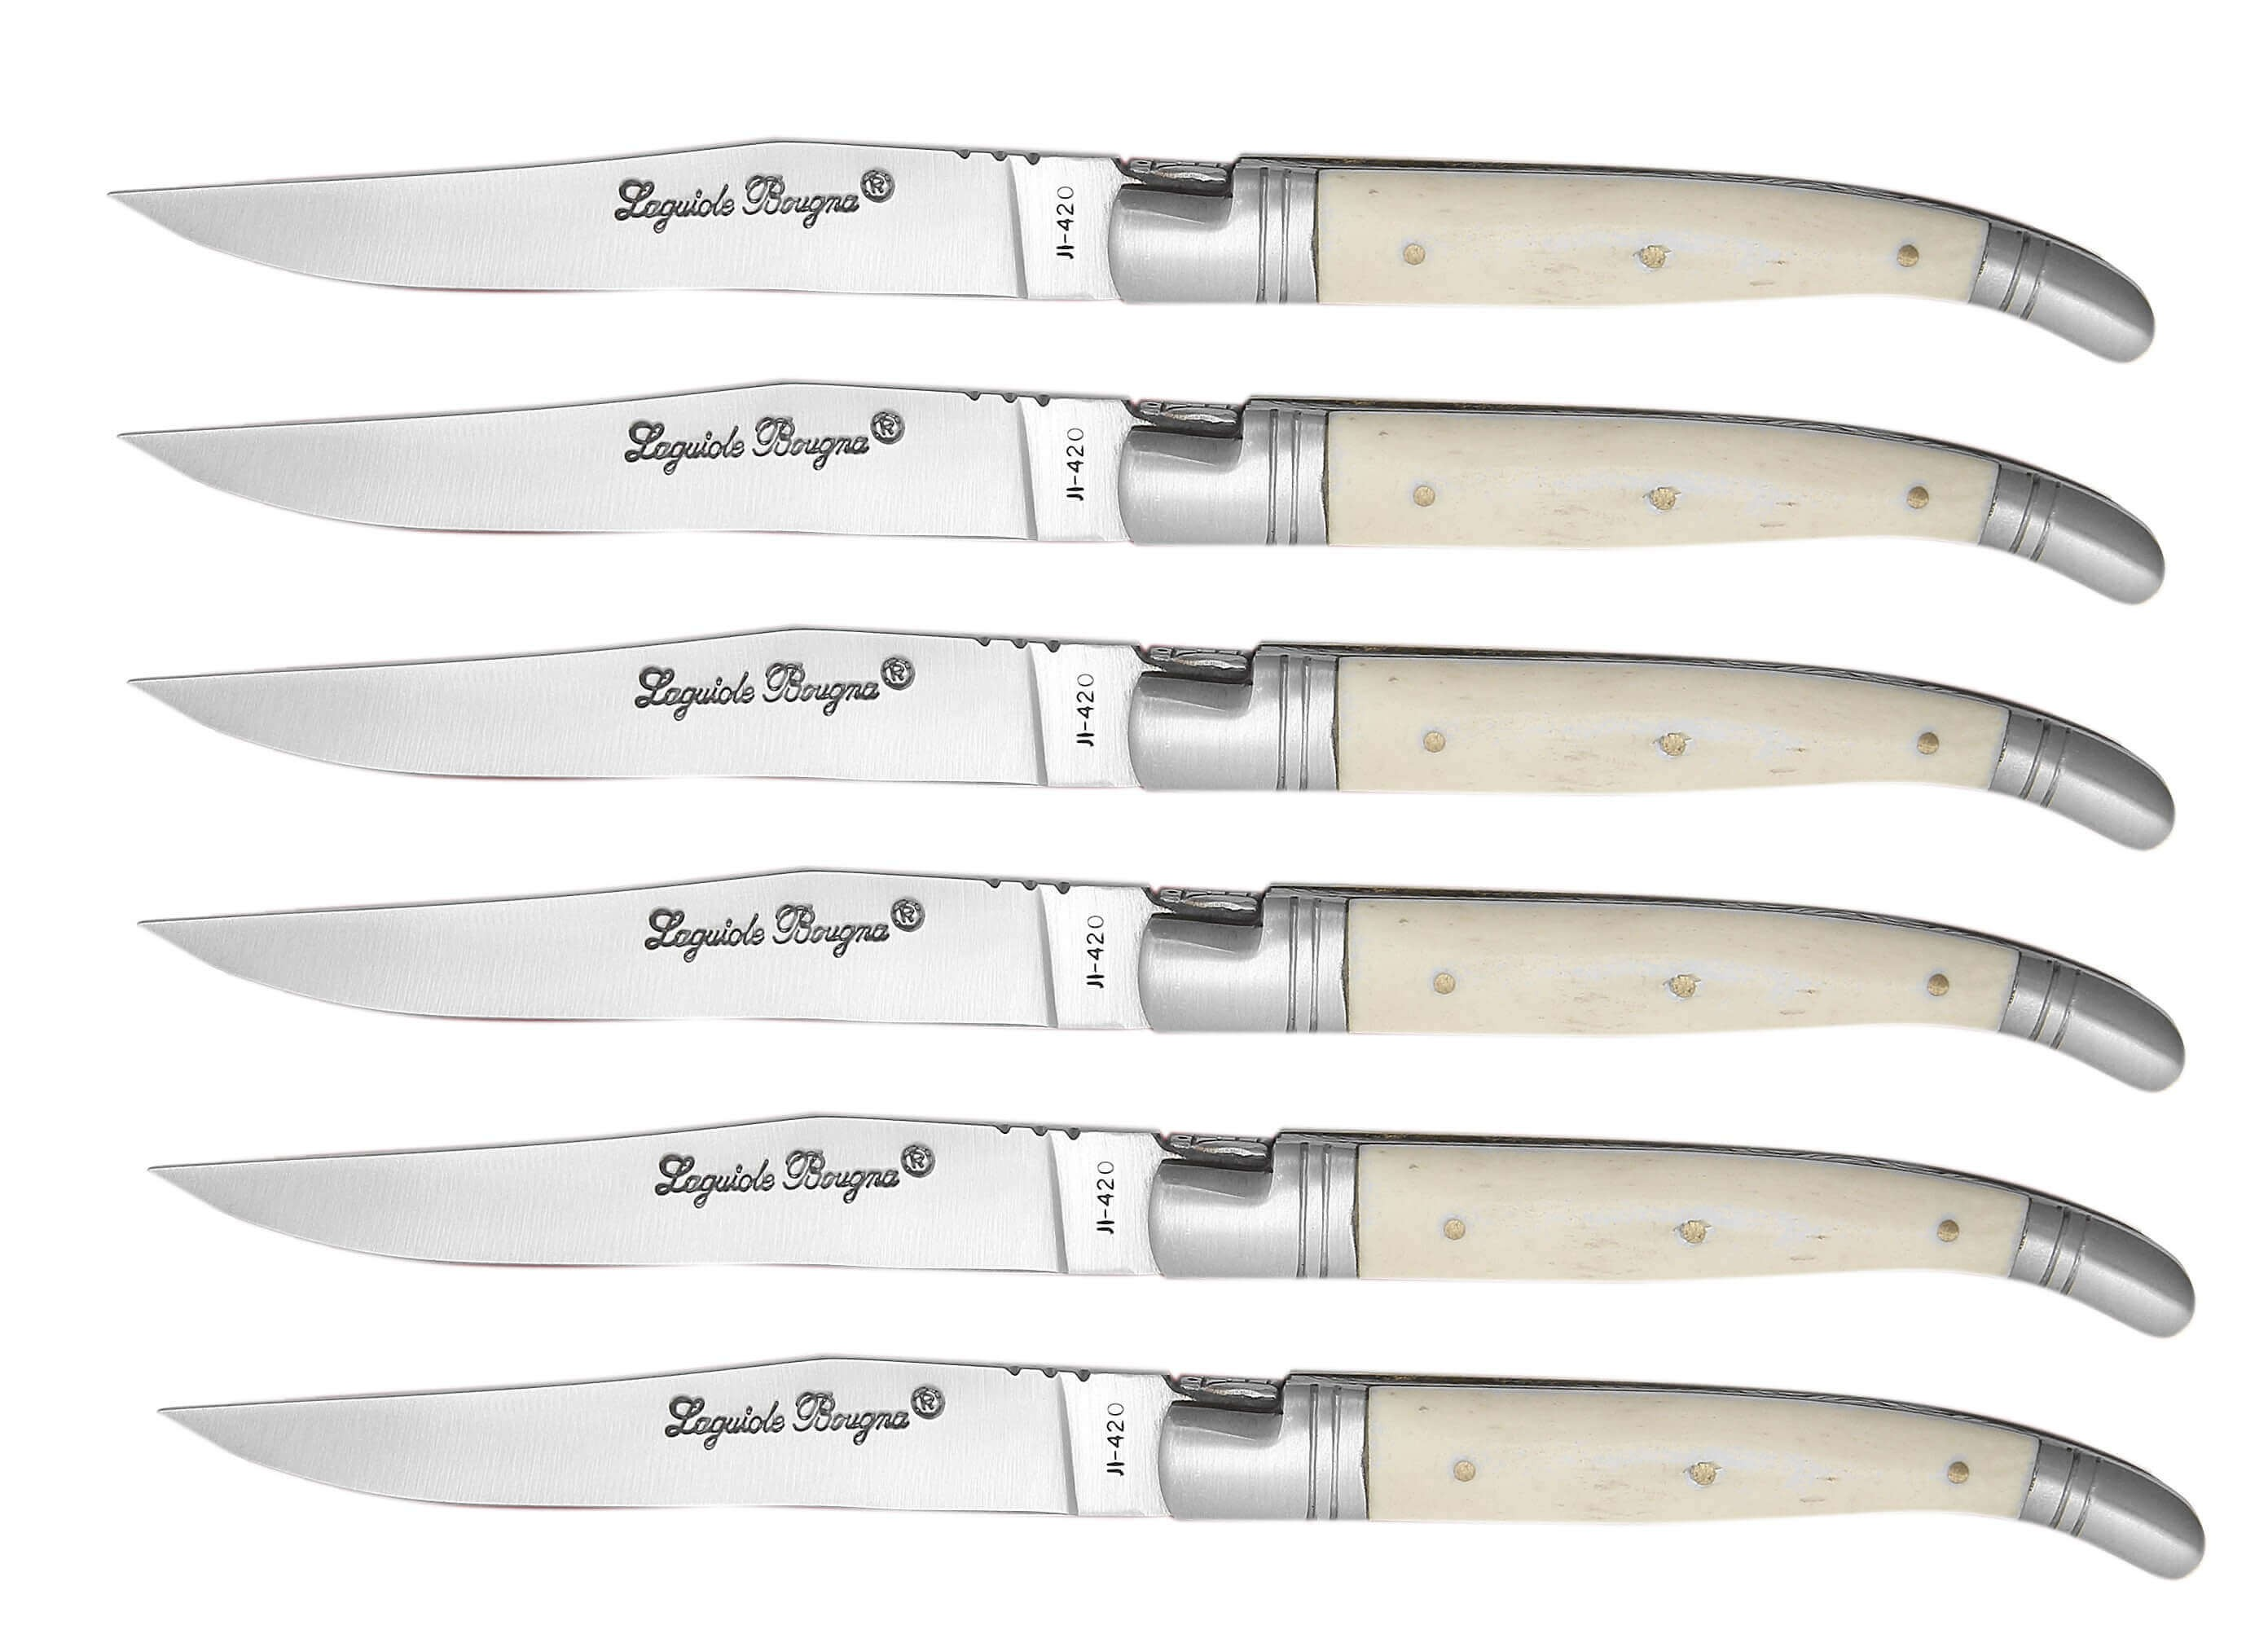 Laguiole Bougna Gift Box Set with 6 Table Knives